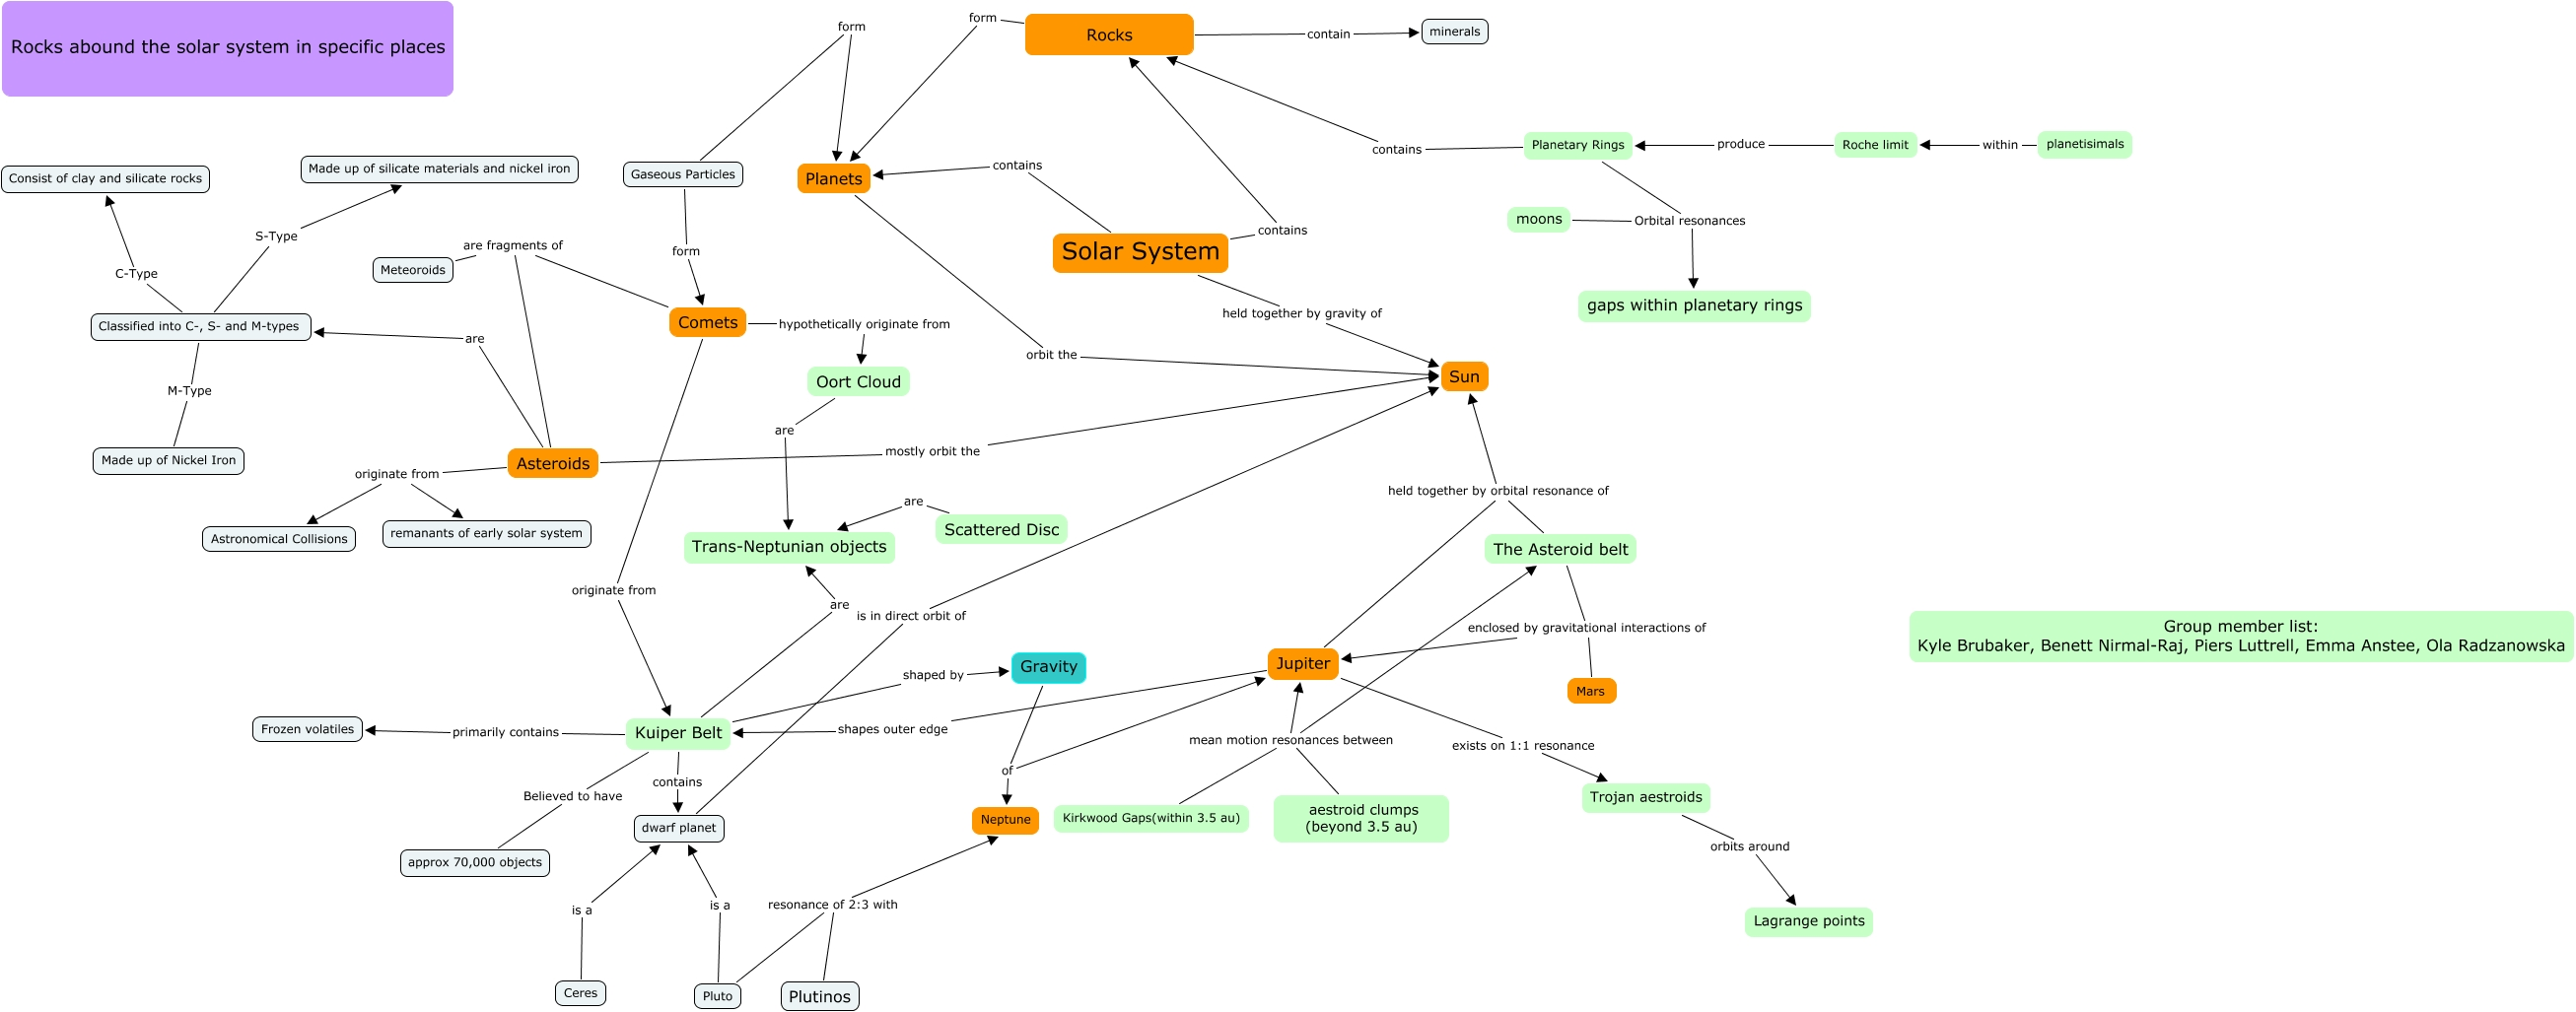 Minerals Concept Map.Group 36 Concept Map